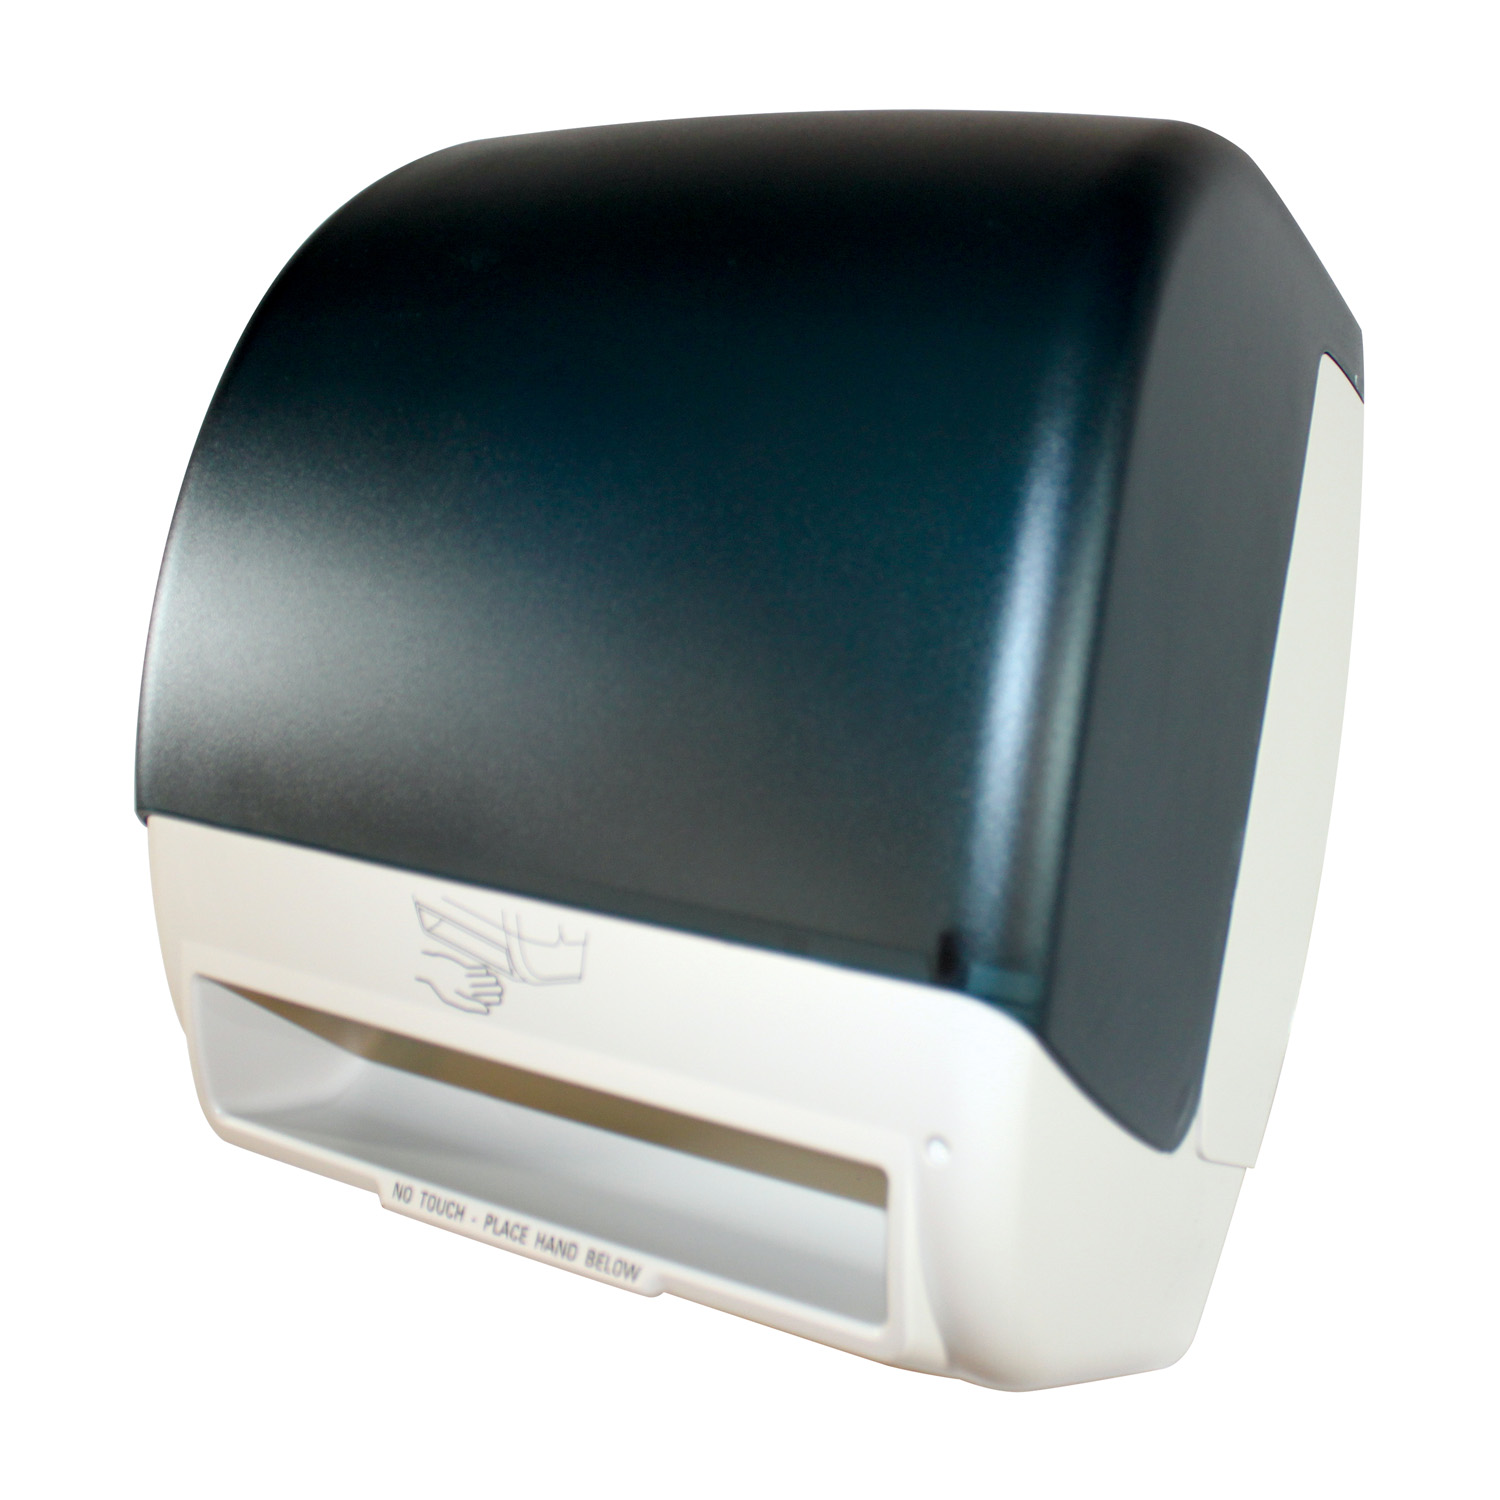 Impact Products 5079 paper towel dispenser